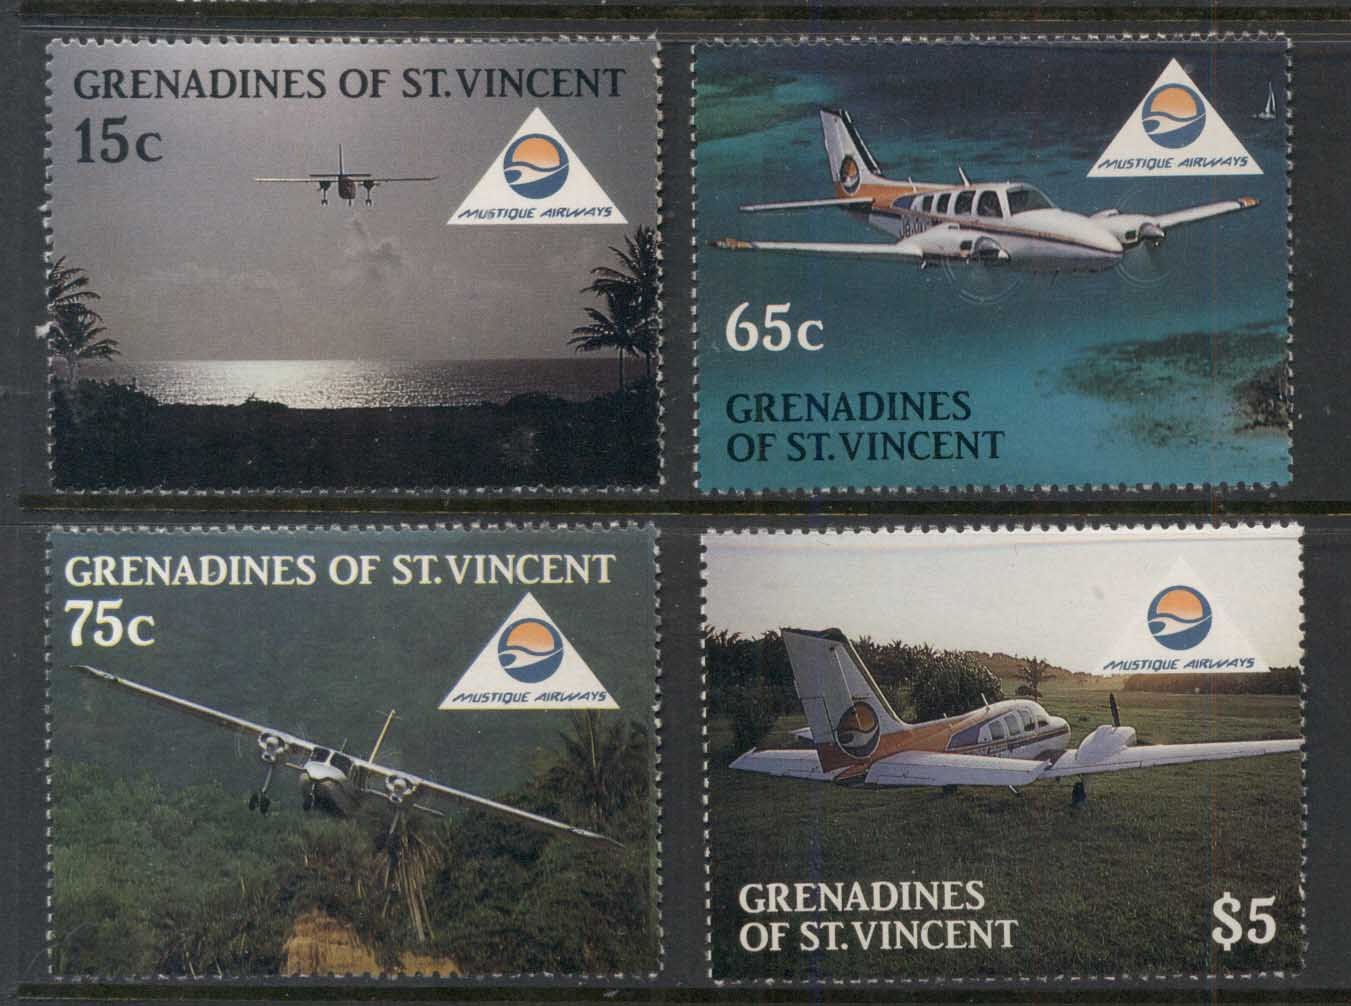 St Vincent Grenadines 1988 Tourism, Planes MUH